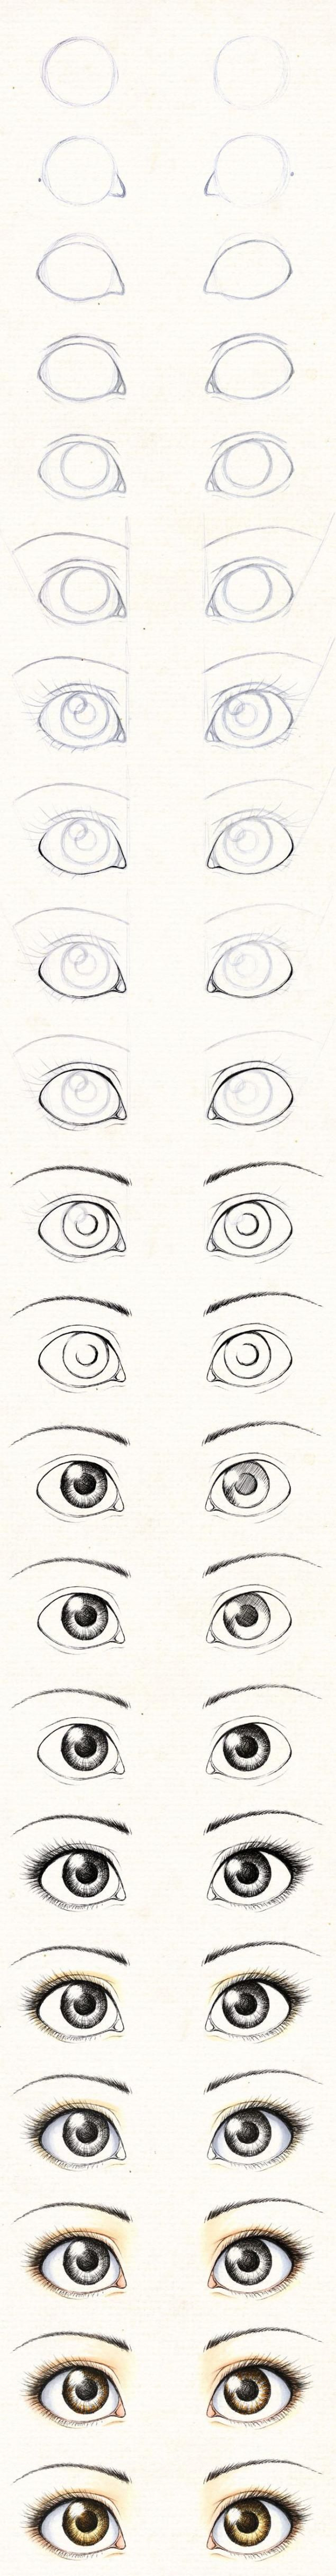 I've seen step by step things to show how to draw eyes though this has the most steps I've ever seen.